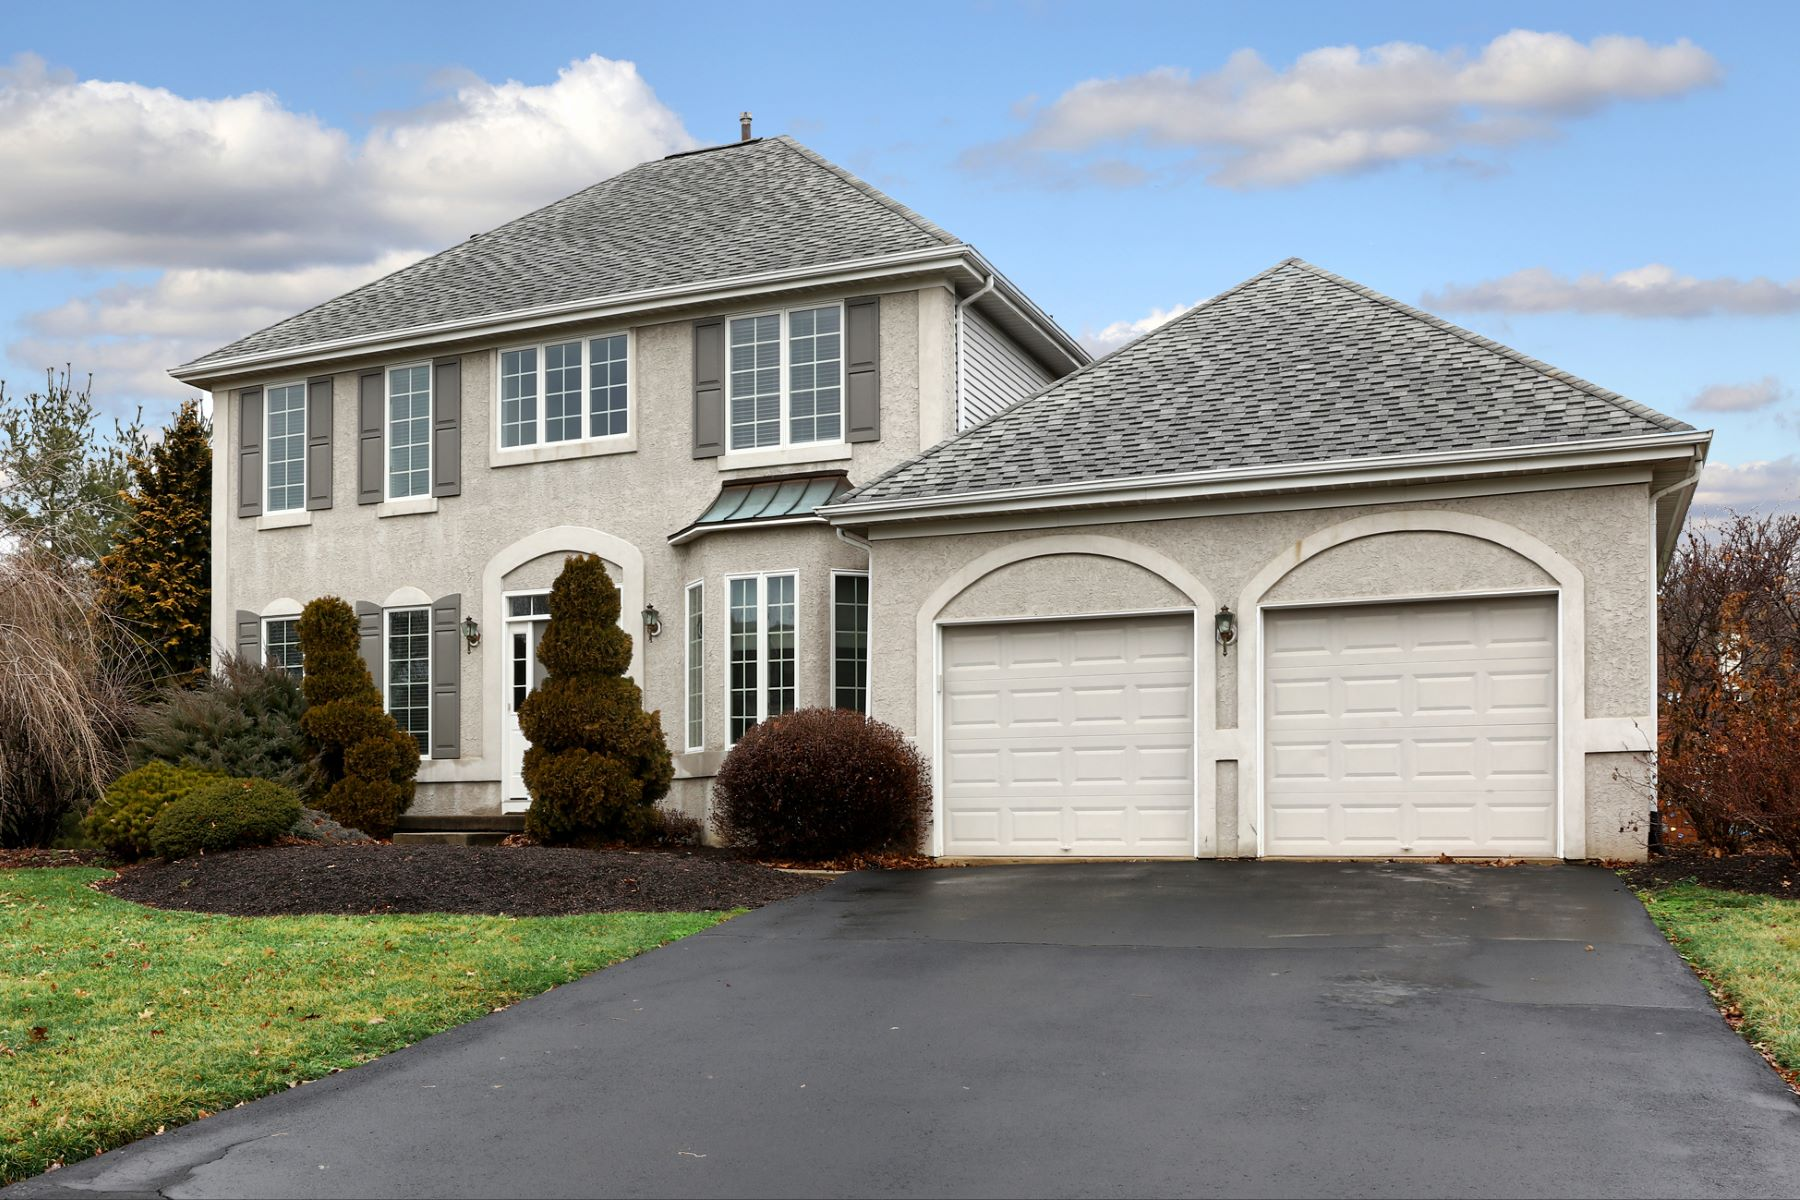 Single Family Home for Sale at Lovely Colonial in Woodside 10 Milburne Lane Robbinsville, New Jersey 08691 United StatesIn/Around: Robbinsville Township